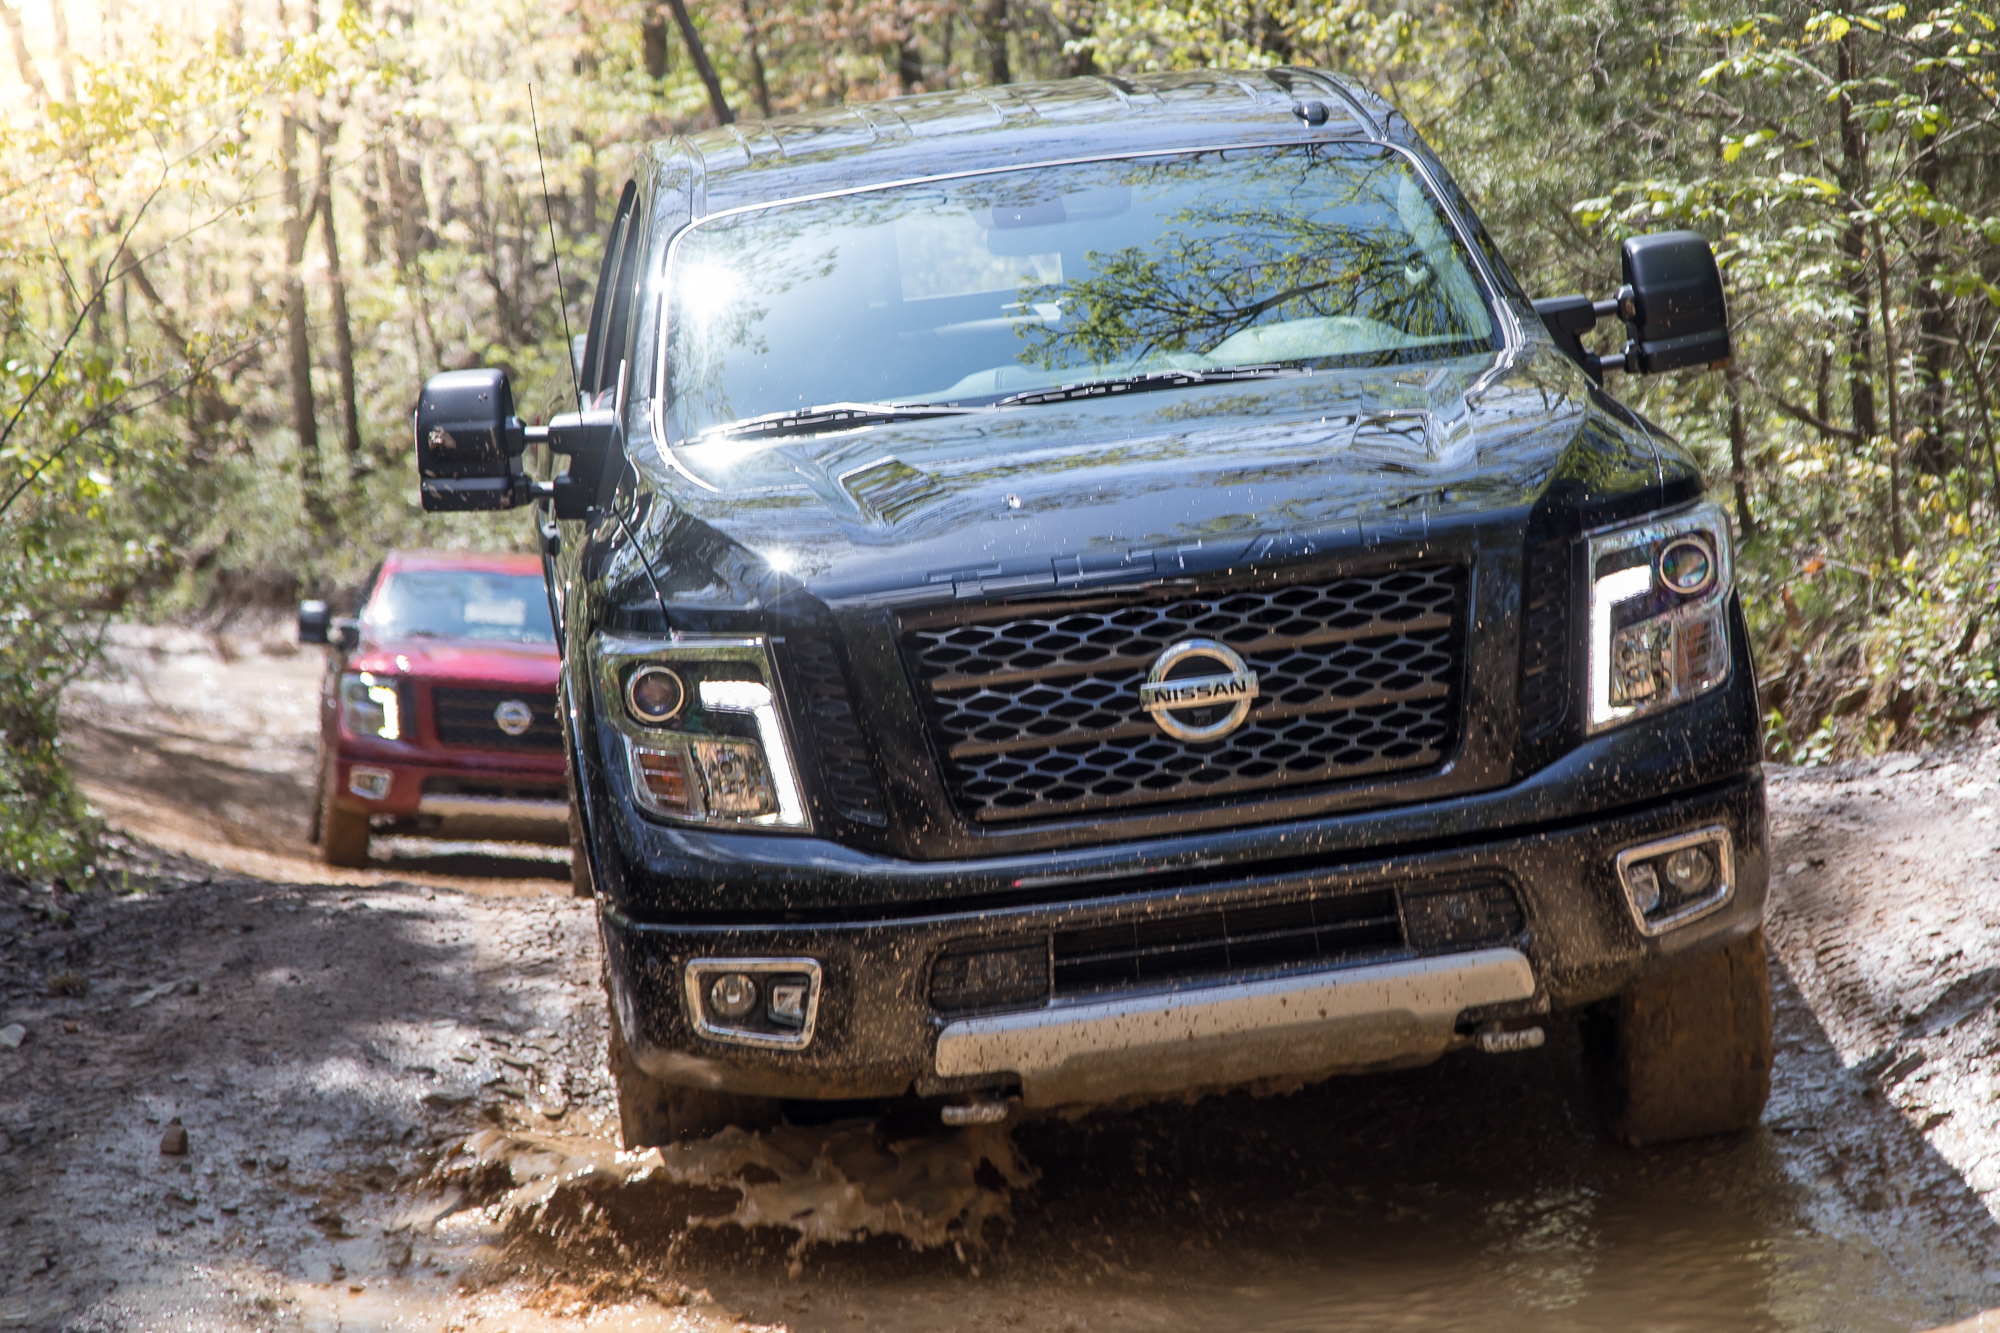 08-nissan-titan-2018-badge--black--exterior--grille--off-road.jpg